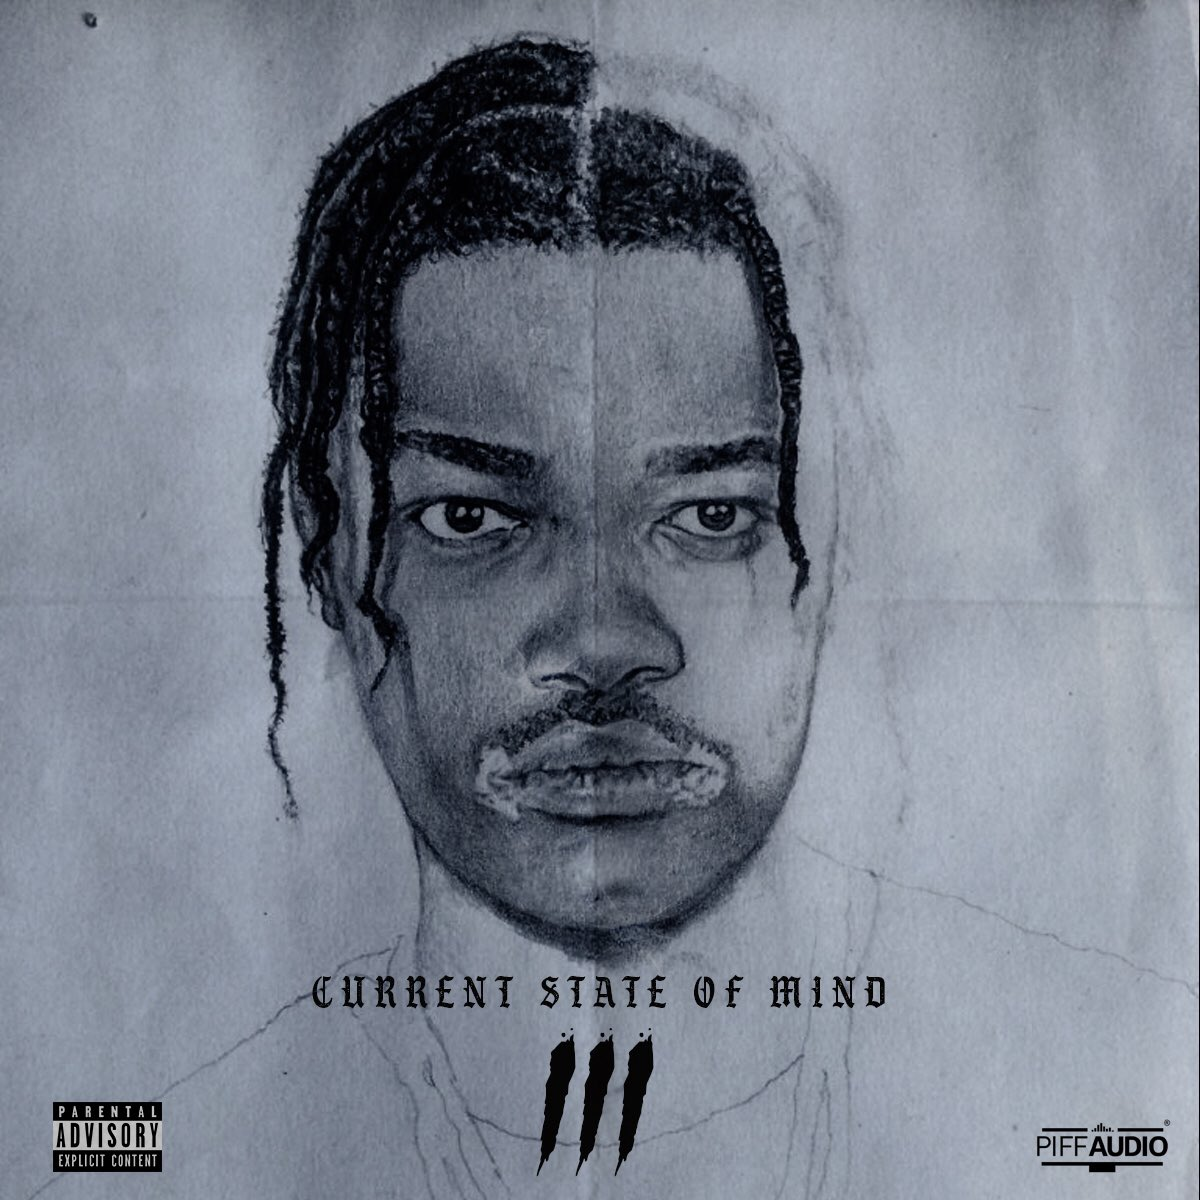 zoocci coke dope Zoocci Coke Dope Teases Upcoming 'Current State Of Mind III' Project Dropping Thursday D675kNXWkAEvYq5